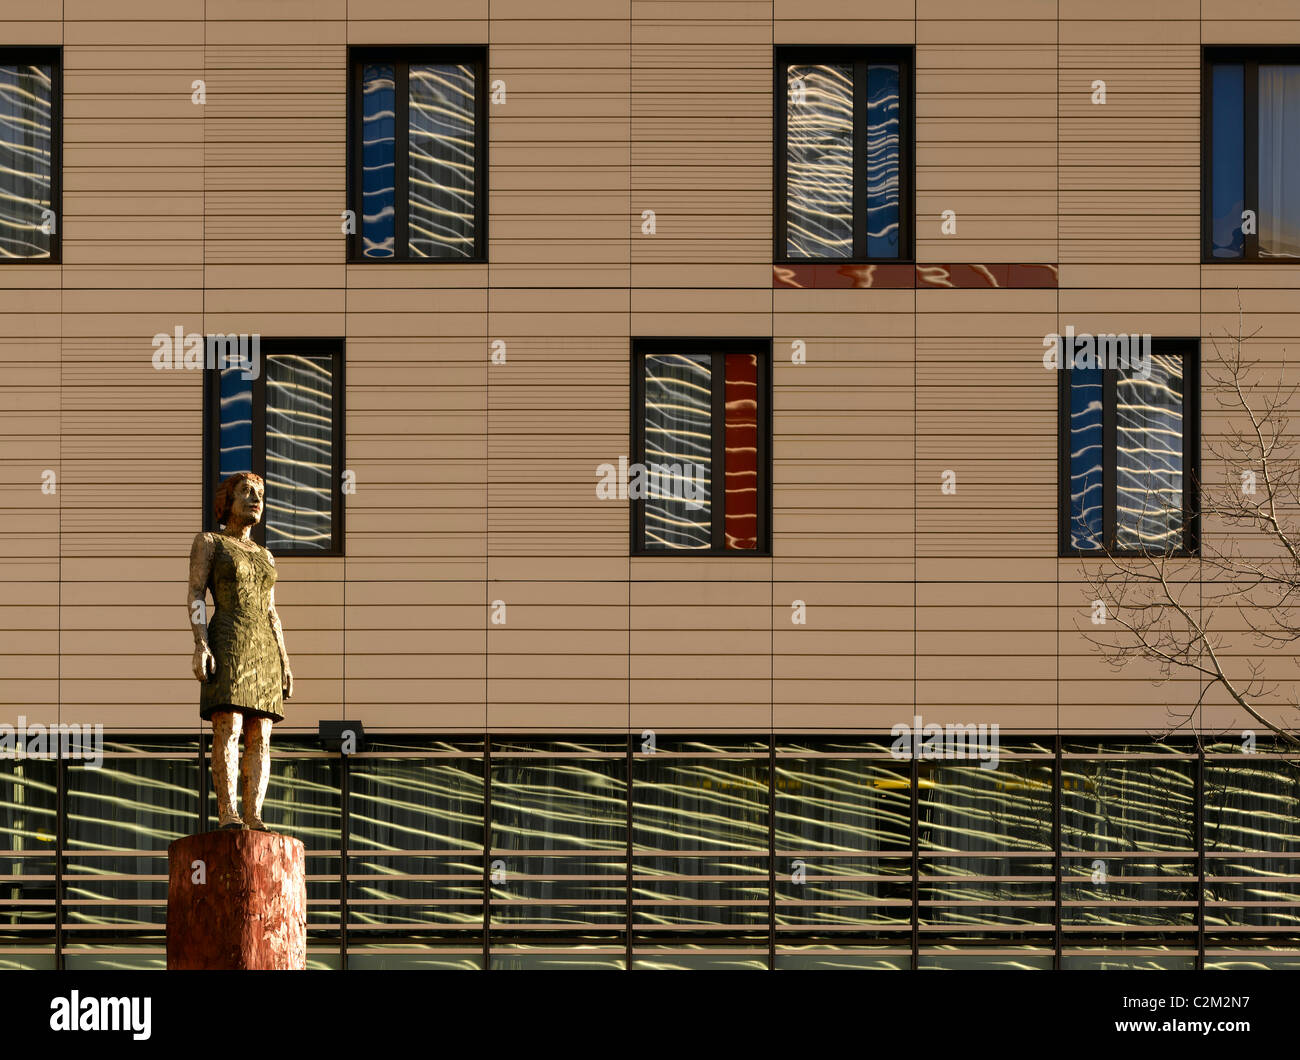 More London Riverside - Window elevation and wood carved statue part of Couple by Stephan Balkenhol - Stock Image